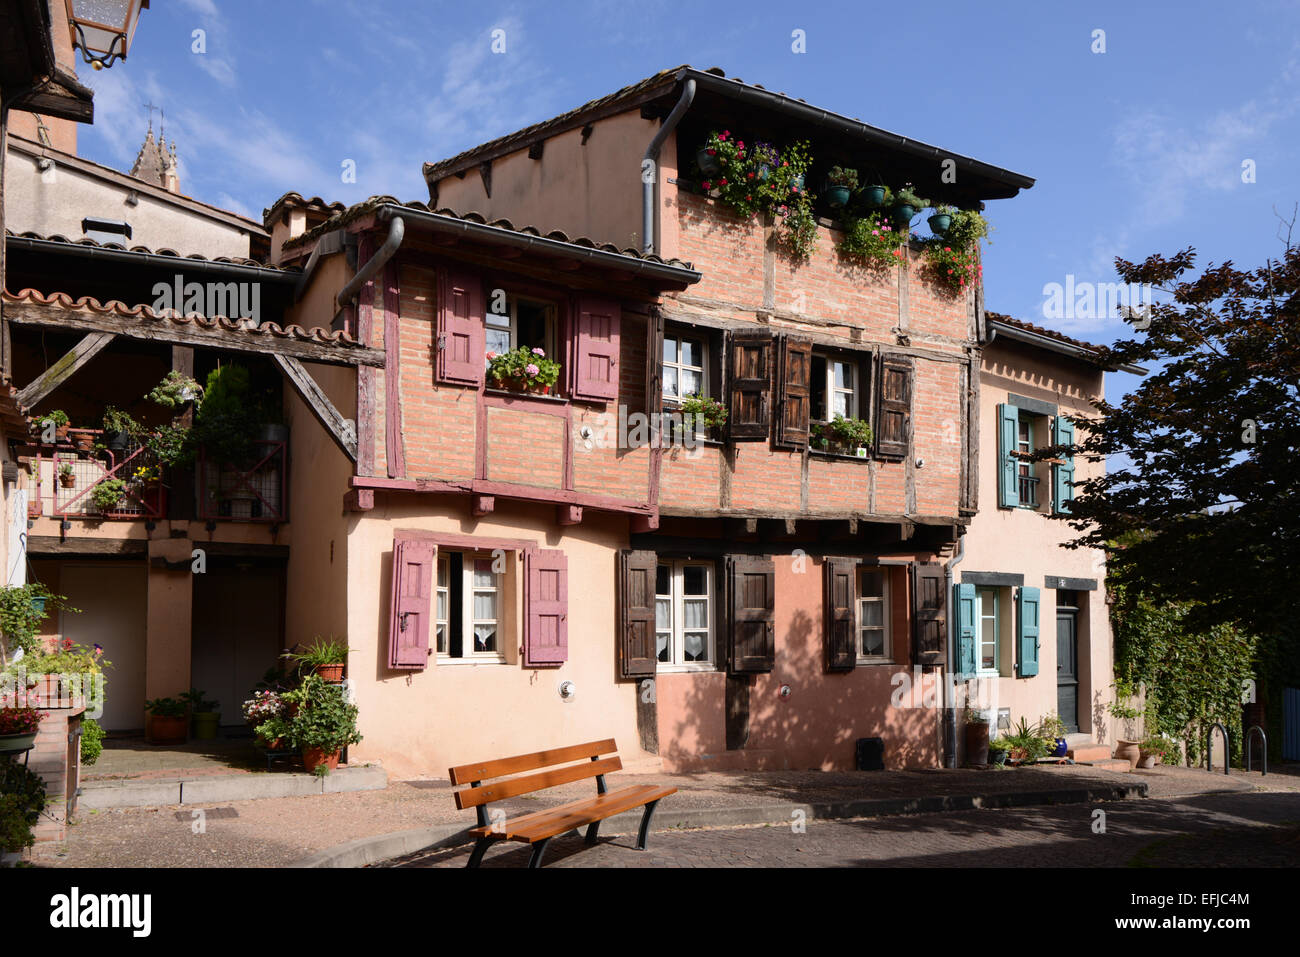 Town Houses & Public Square in the Old Town Albi Tarn France - Stock Image